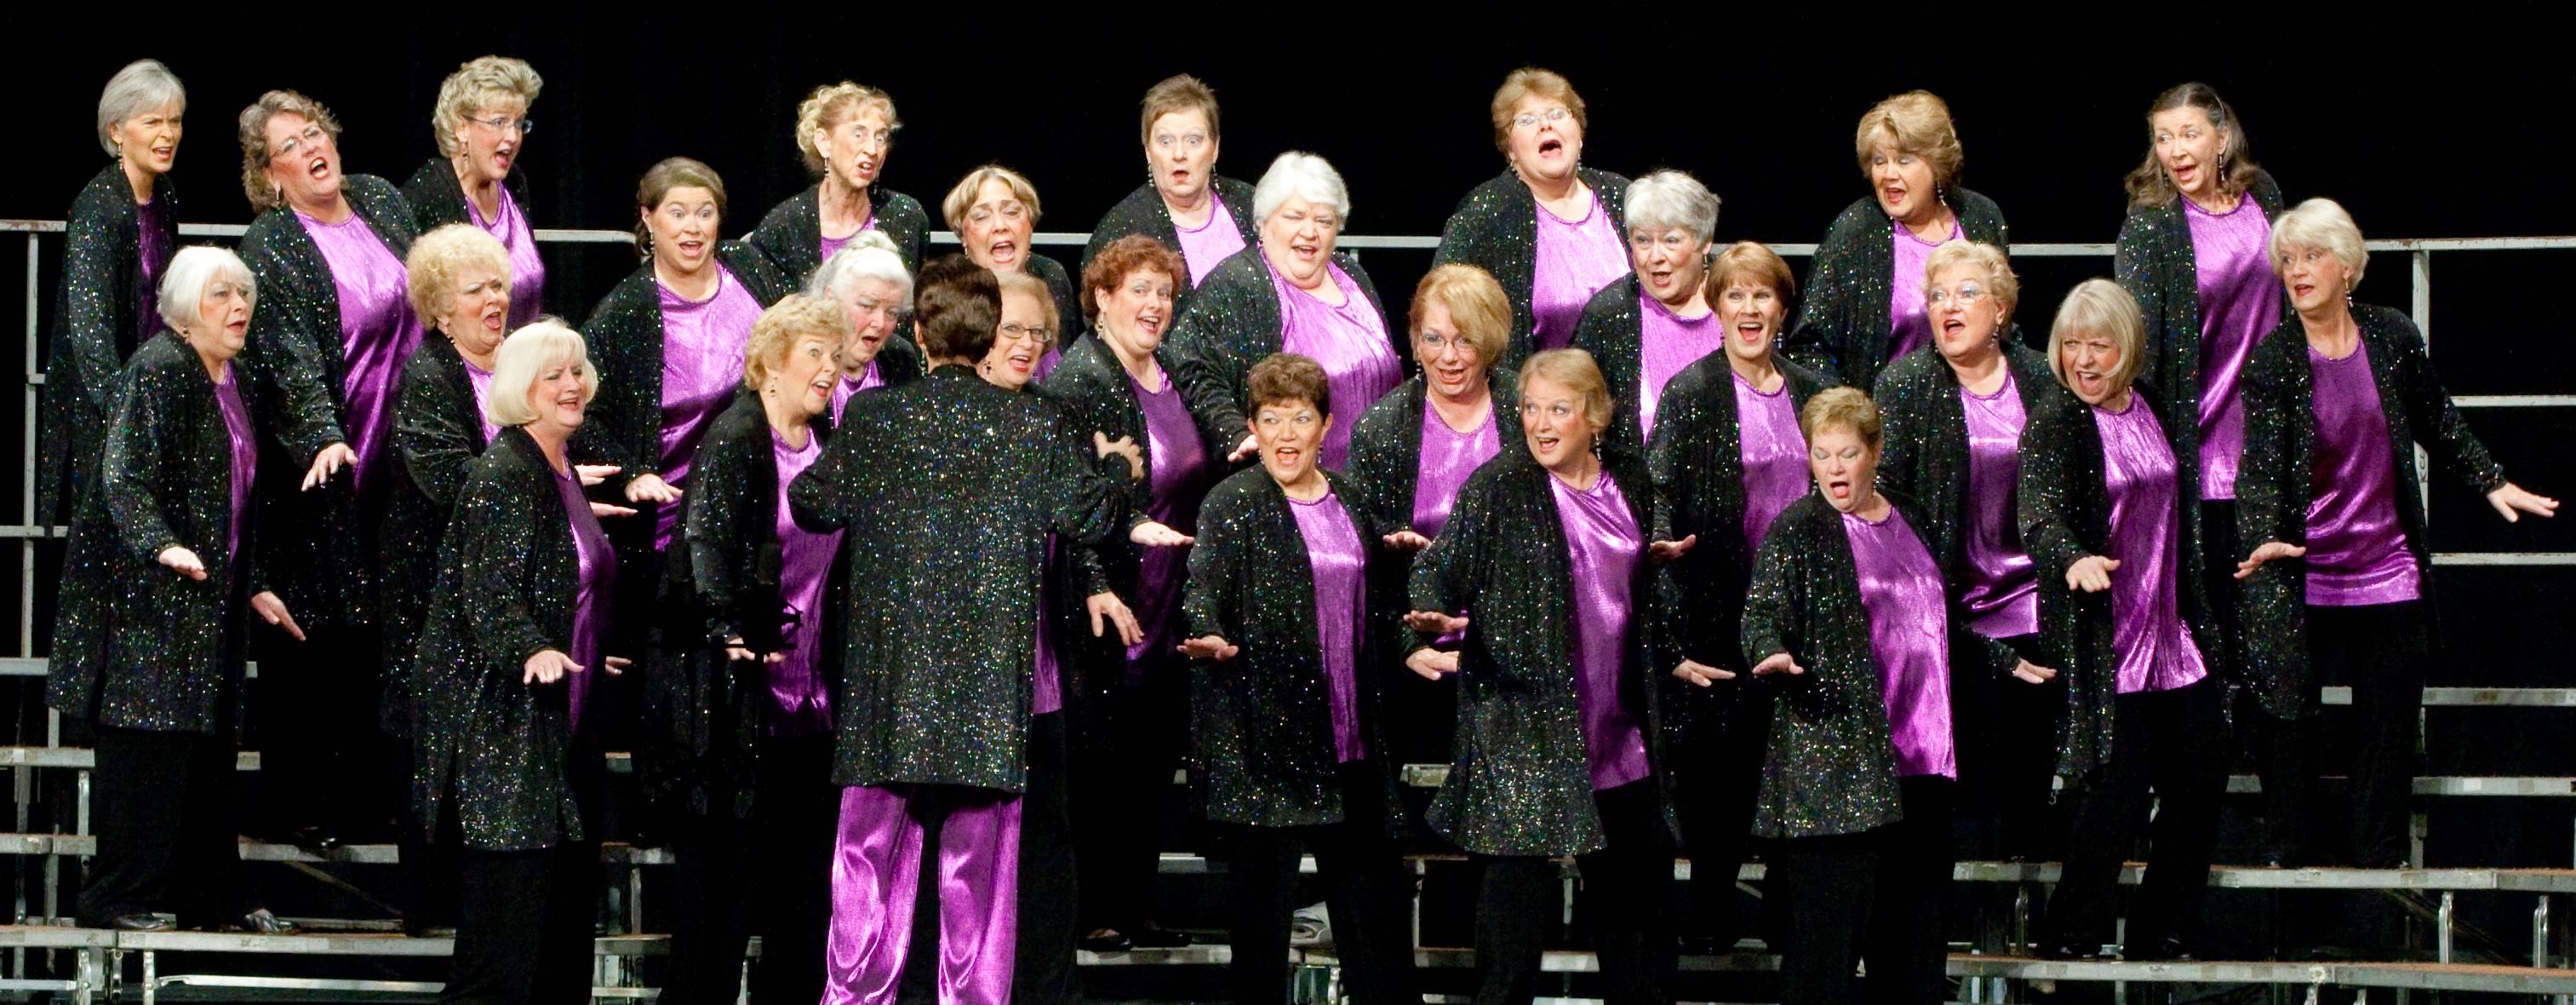 VVC Chorus at competition in Hershey, PA, November, 2011